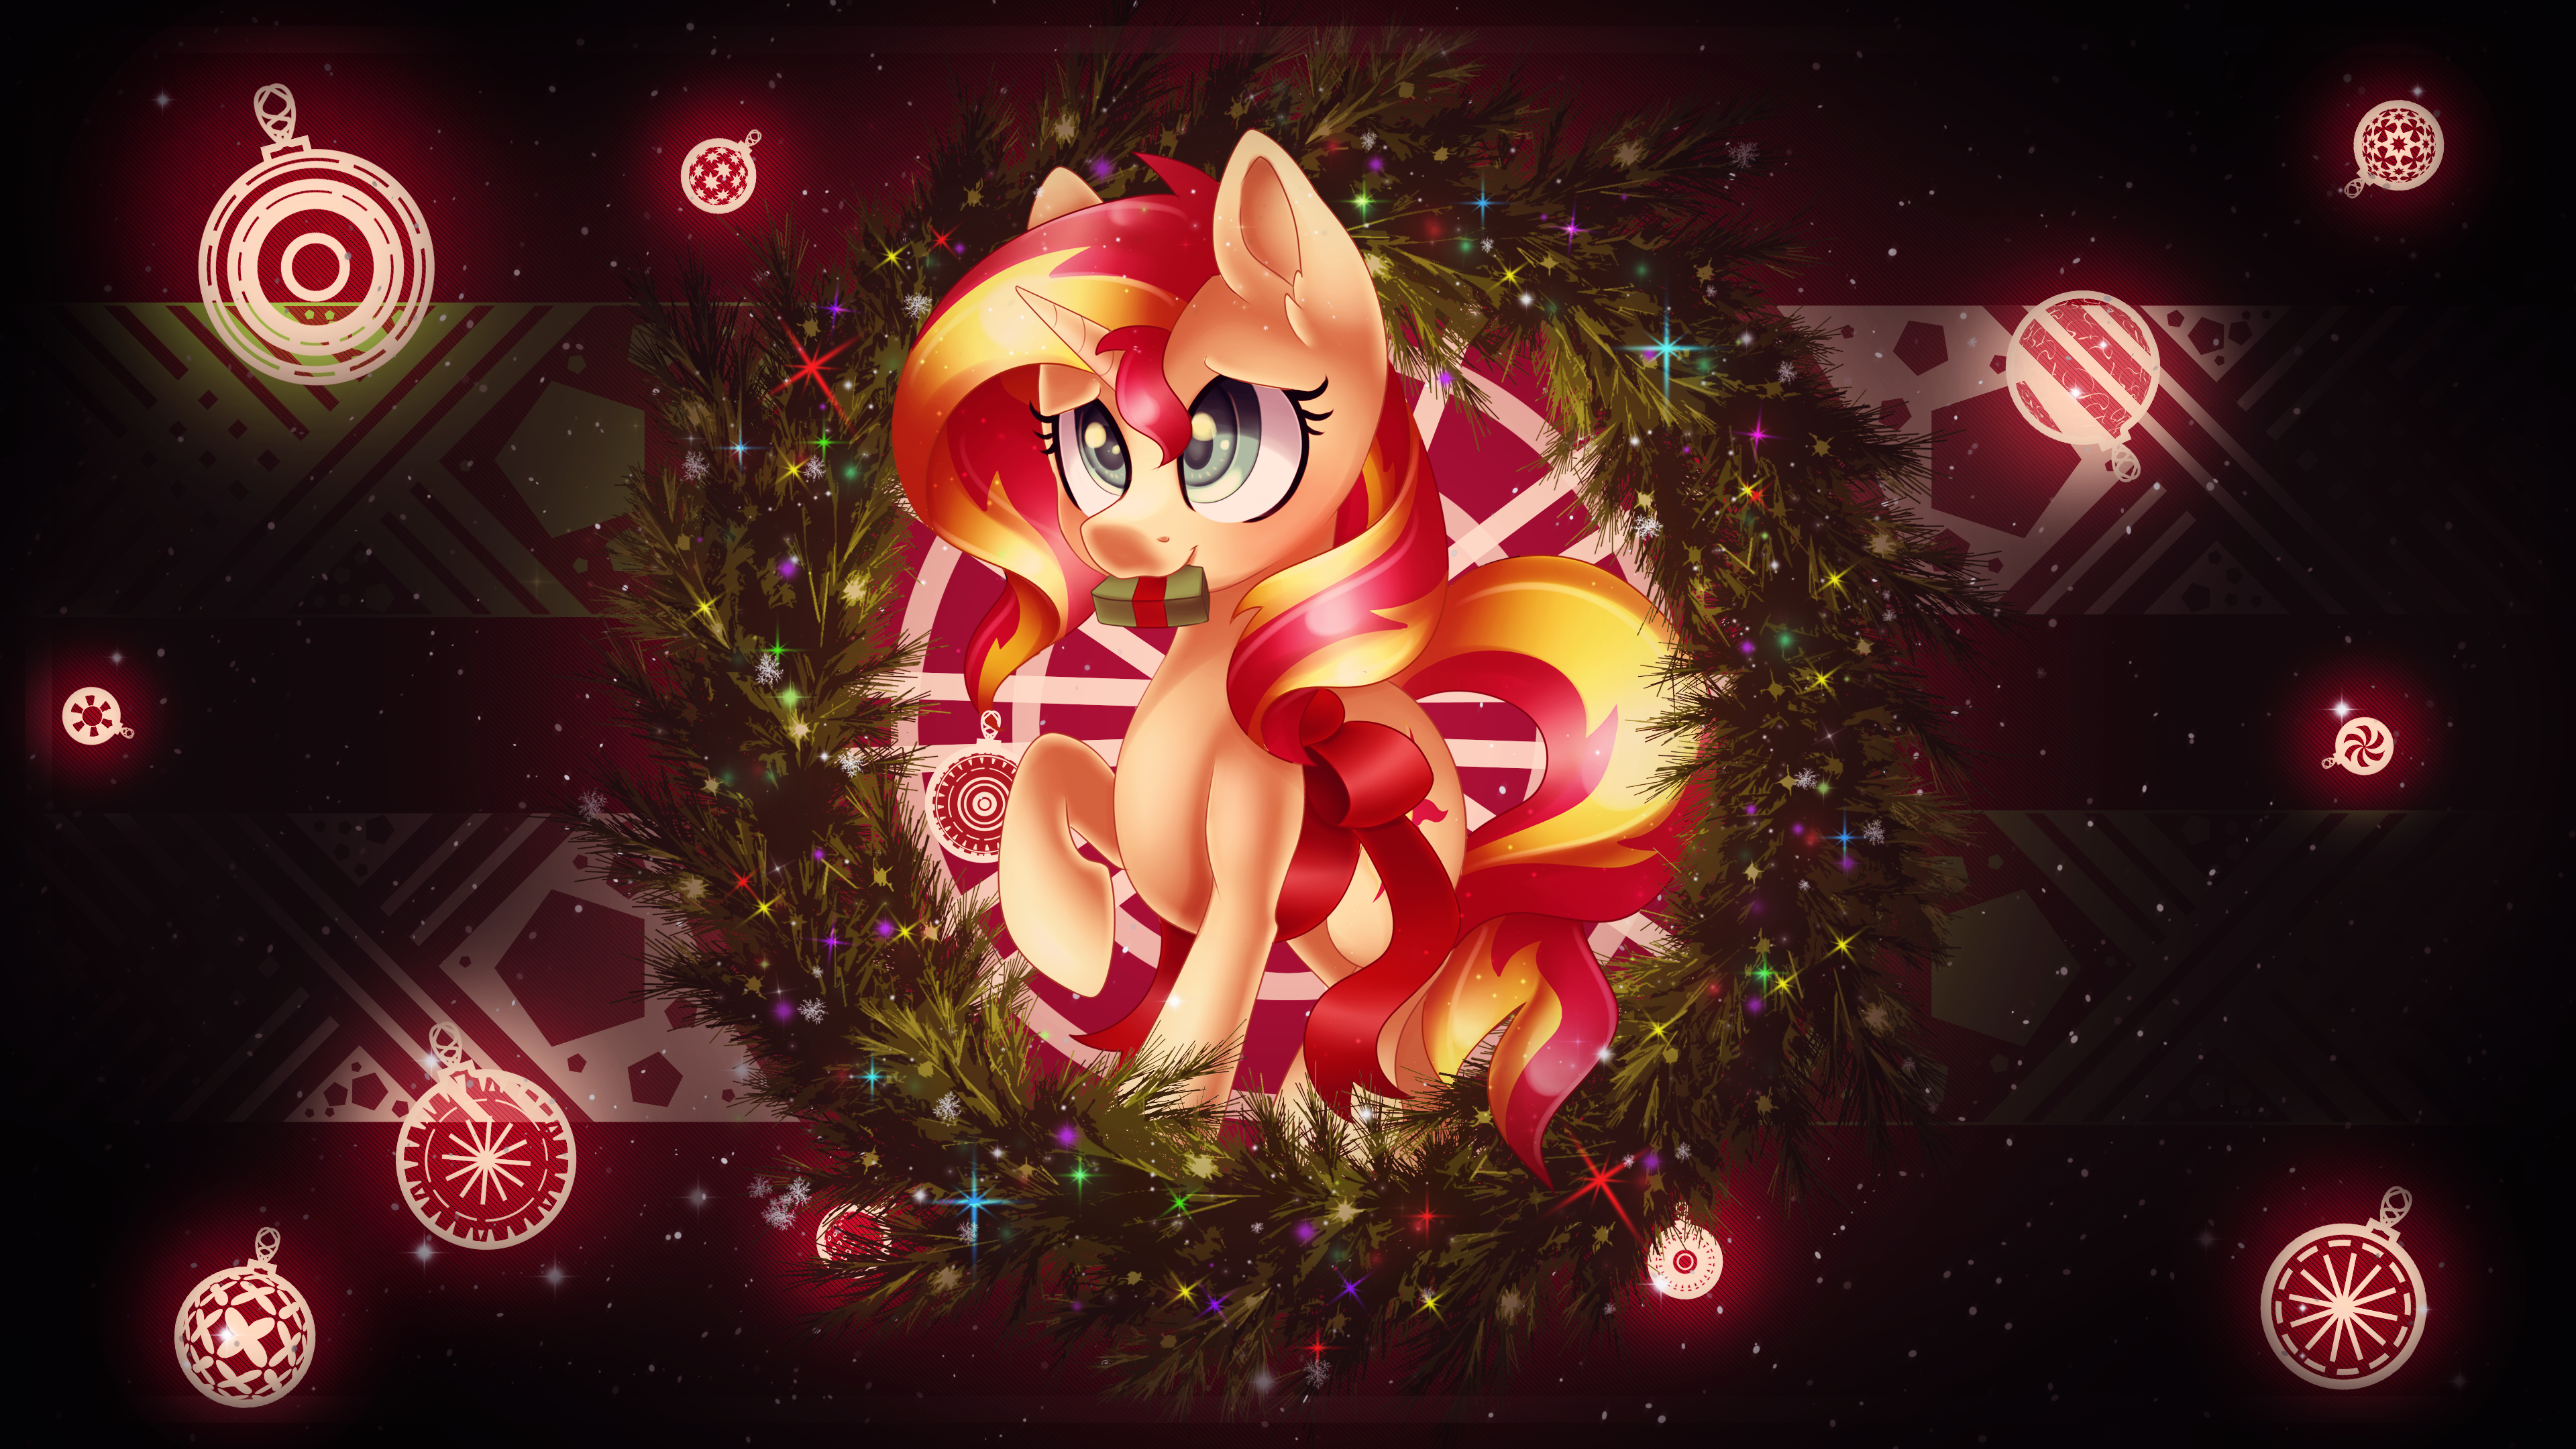 Sunset Xmas by Scarlet-Spectrum and skrayp